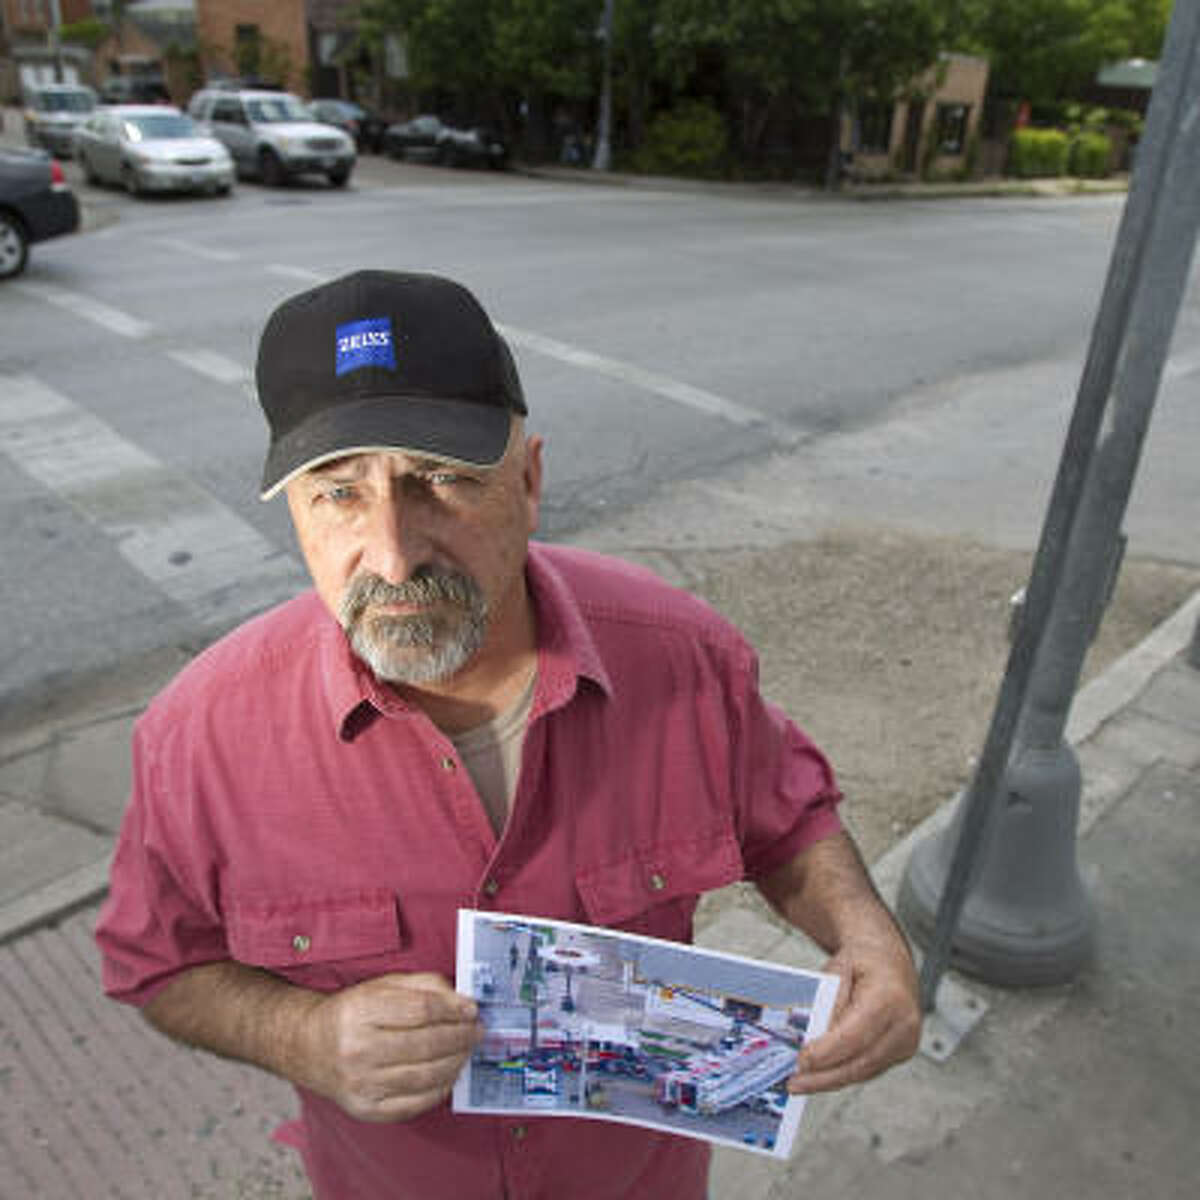 Warren Ducote, who was at the wheel of the Houston Fire Department ladder truck, revisits the scene of the accident at Westheimer and Dunlavy with a photo of the wreckage.